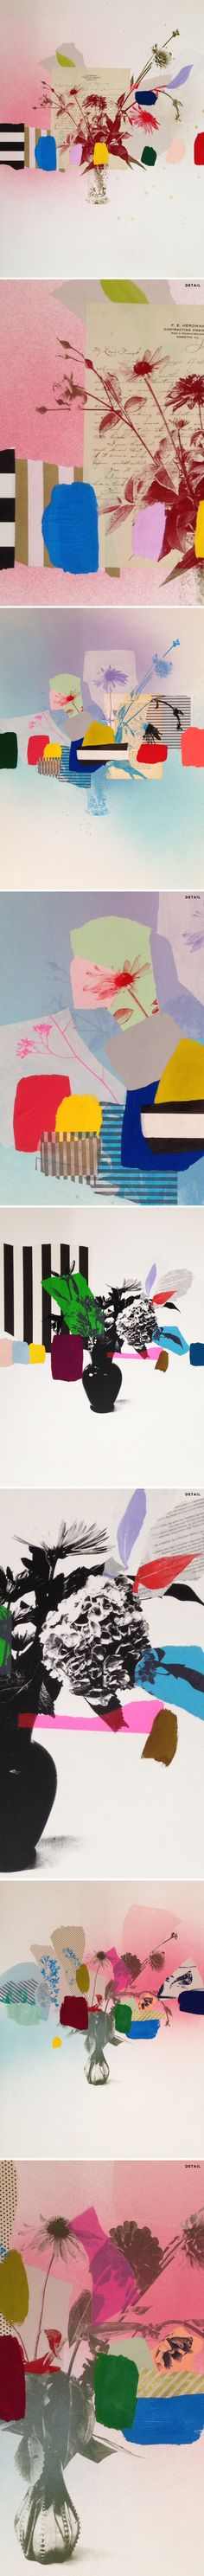 The Jealous Curator /// curated contemporary art /// emily filler